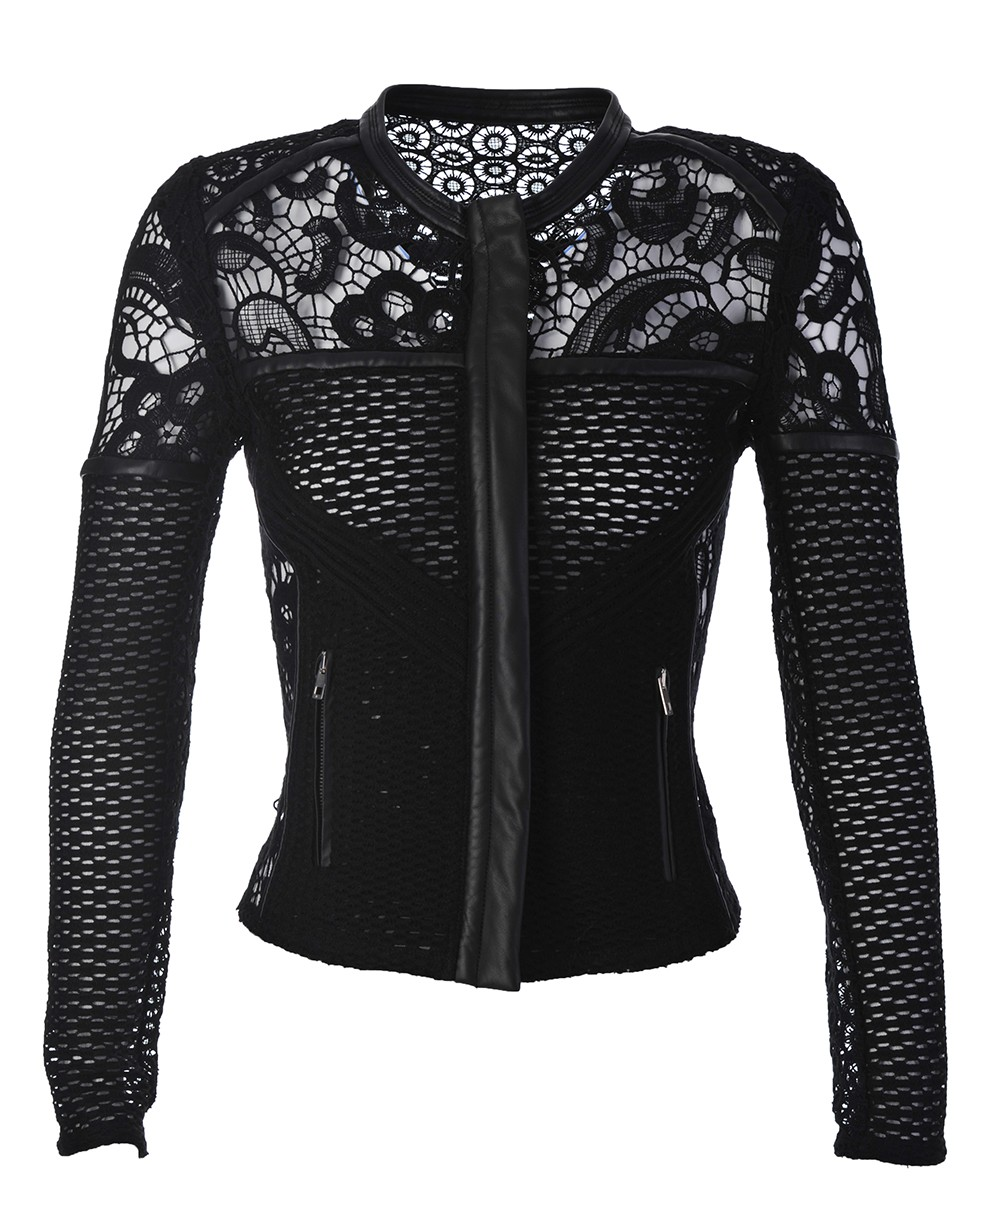 Shop for black lace jacket online at Target. Free shipping on purchases over $35 and save 5% every day with your Target REDcard.